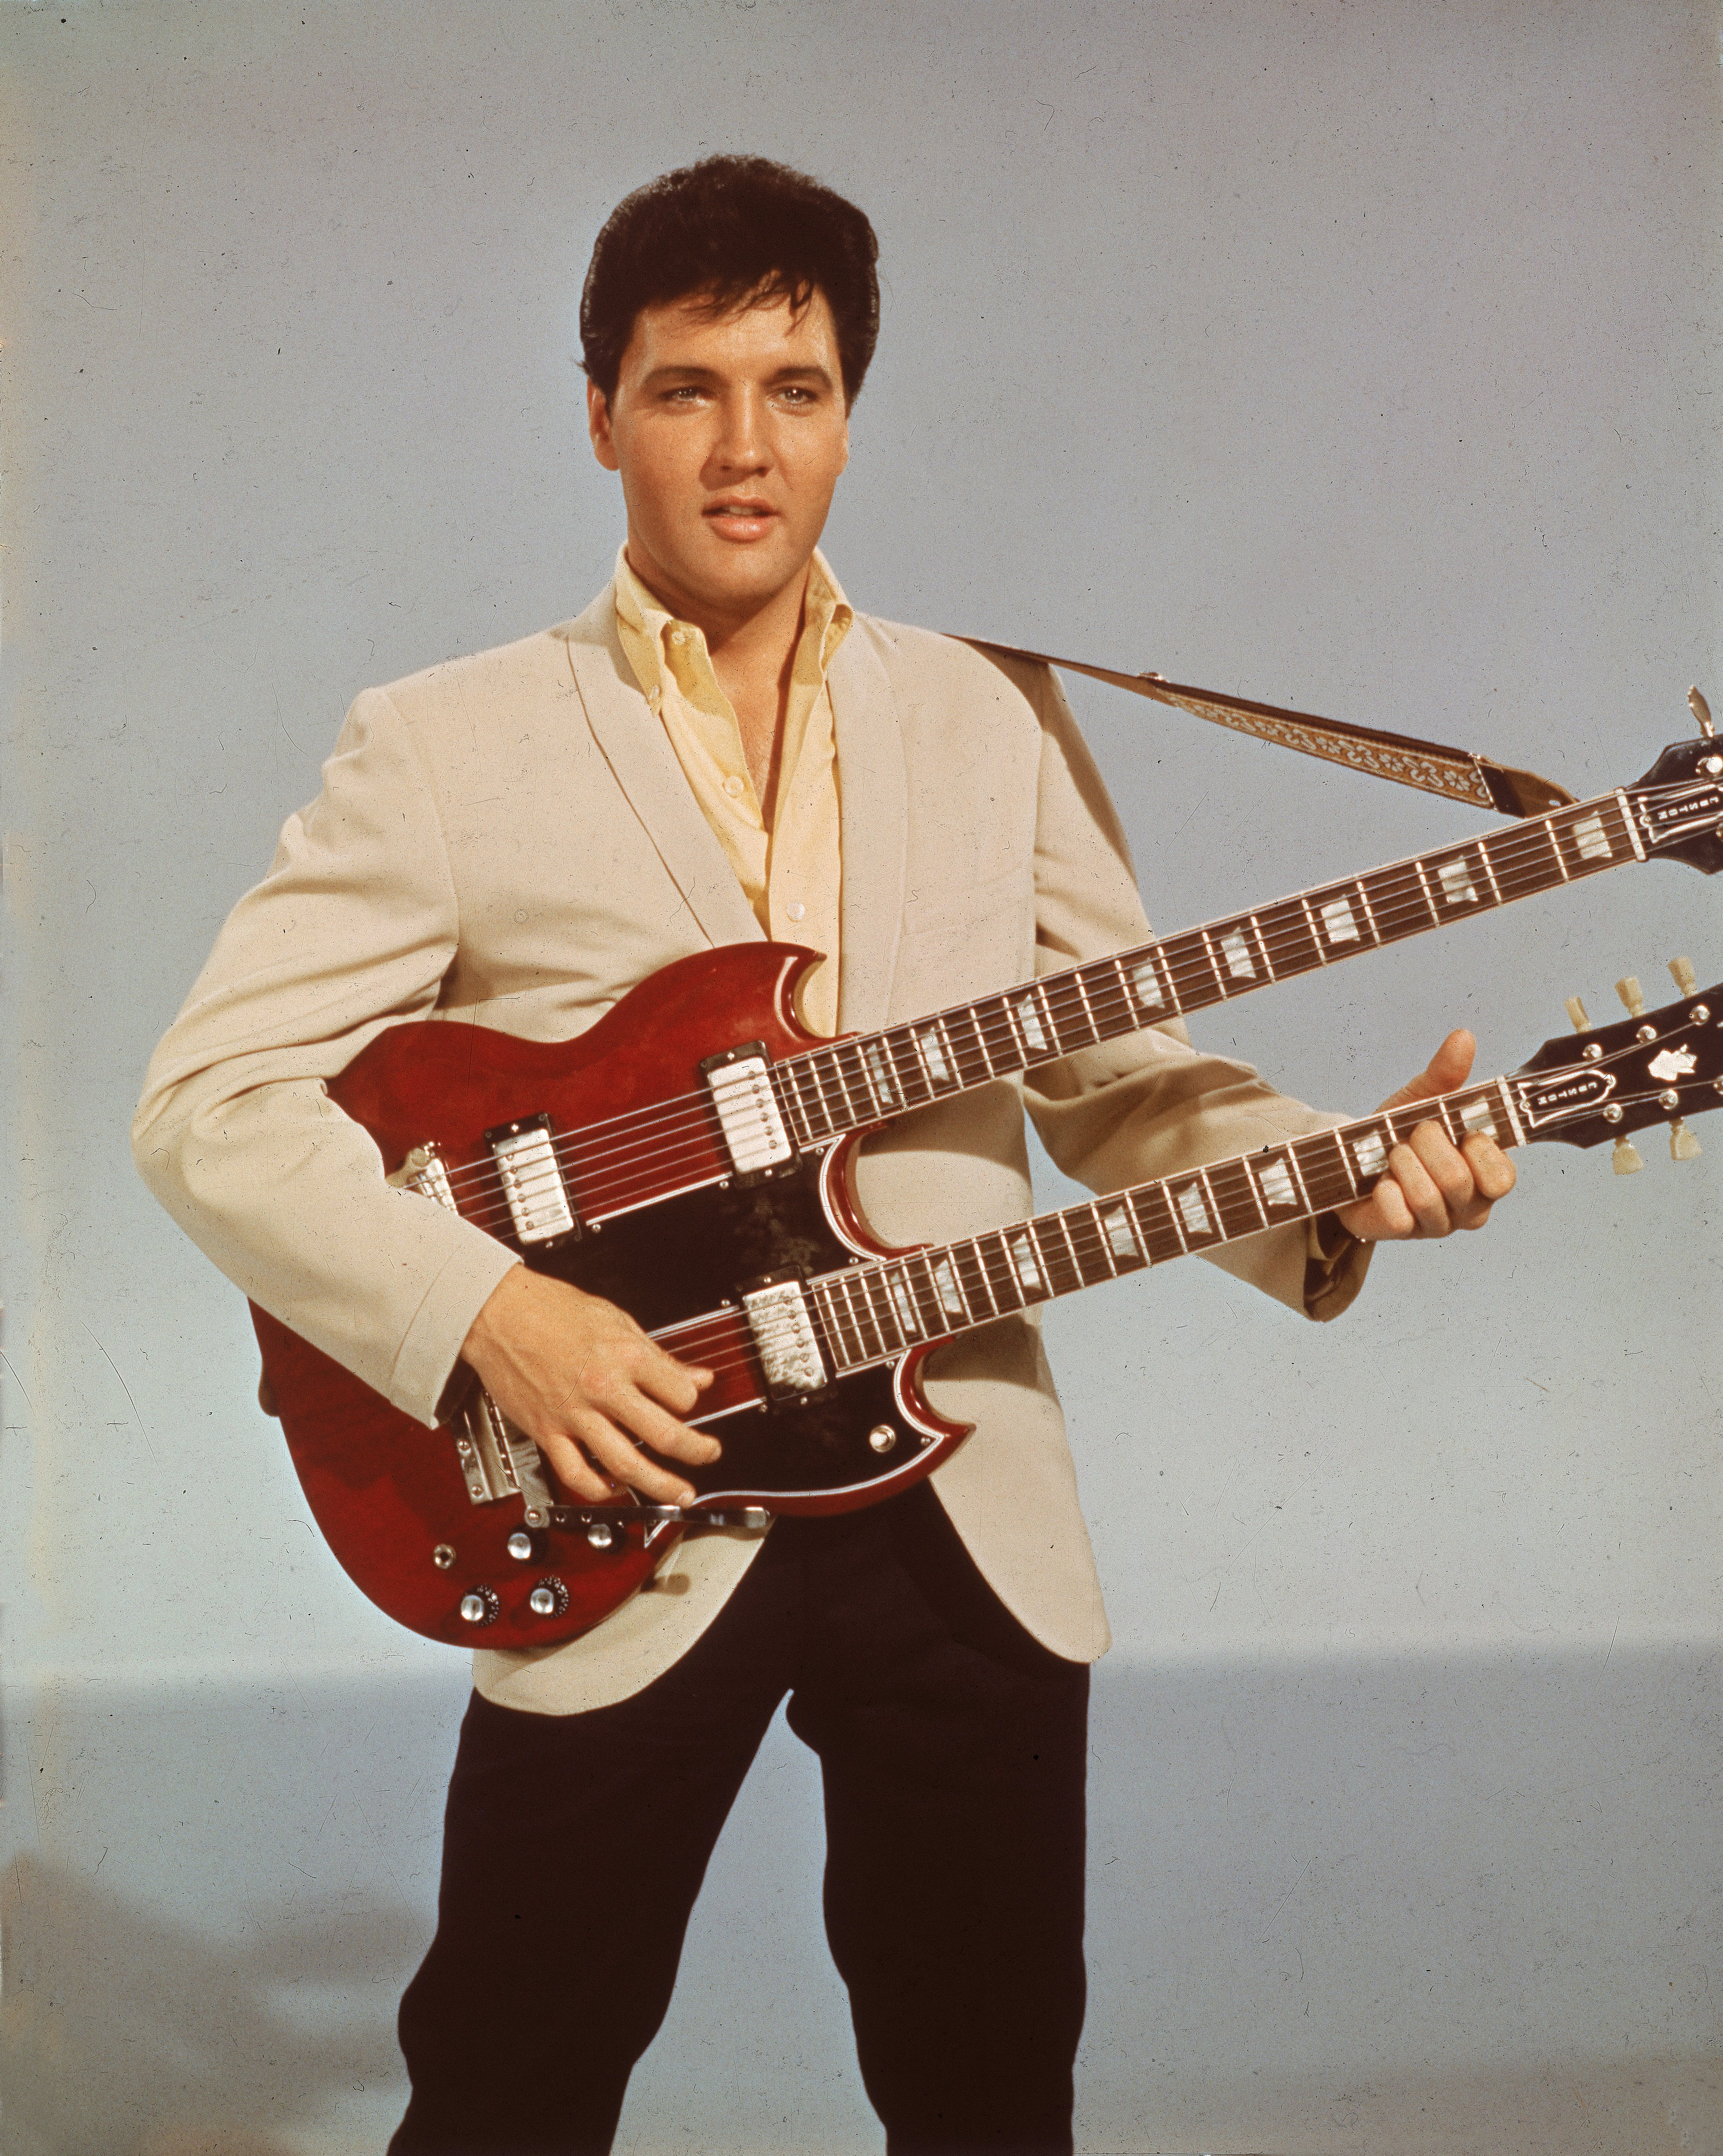 At 36, legendary musician Elvis Presley received a Grammy Lifetime Achievement Award in 1971. Photo: Getty Images